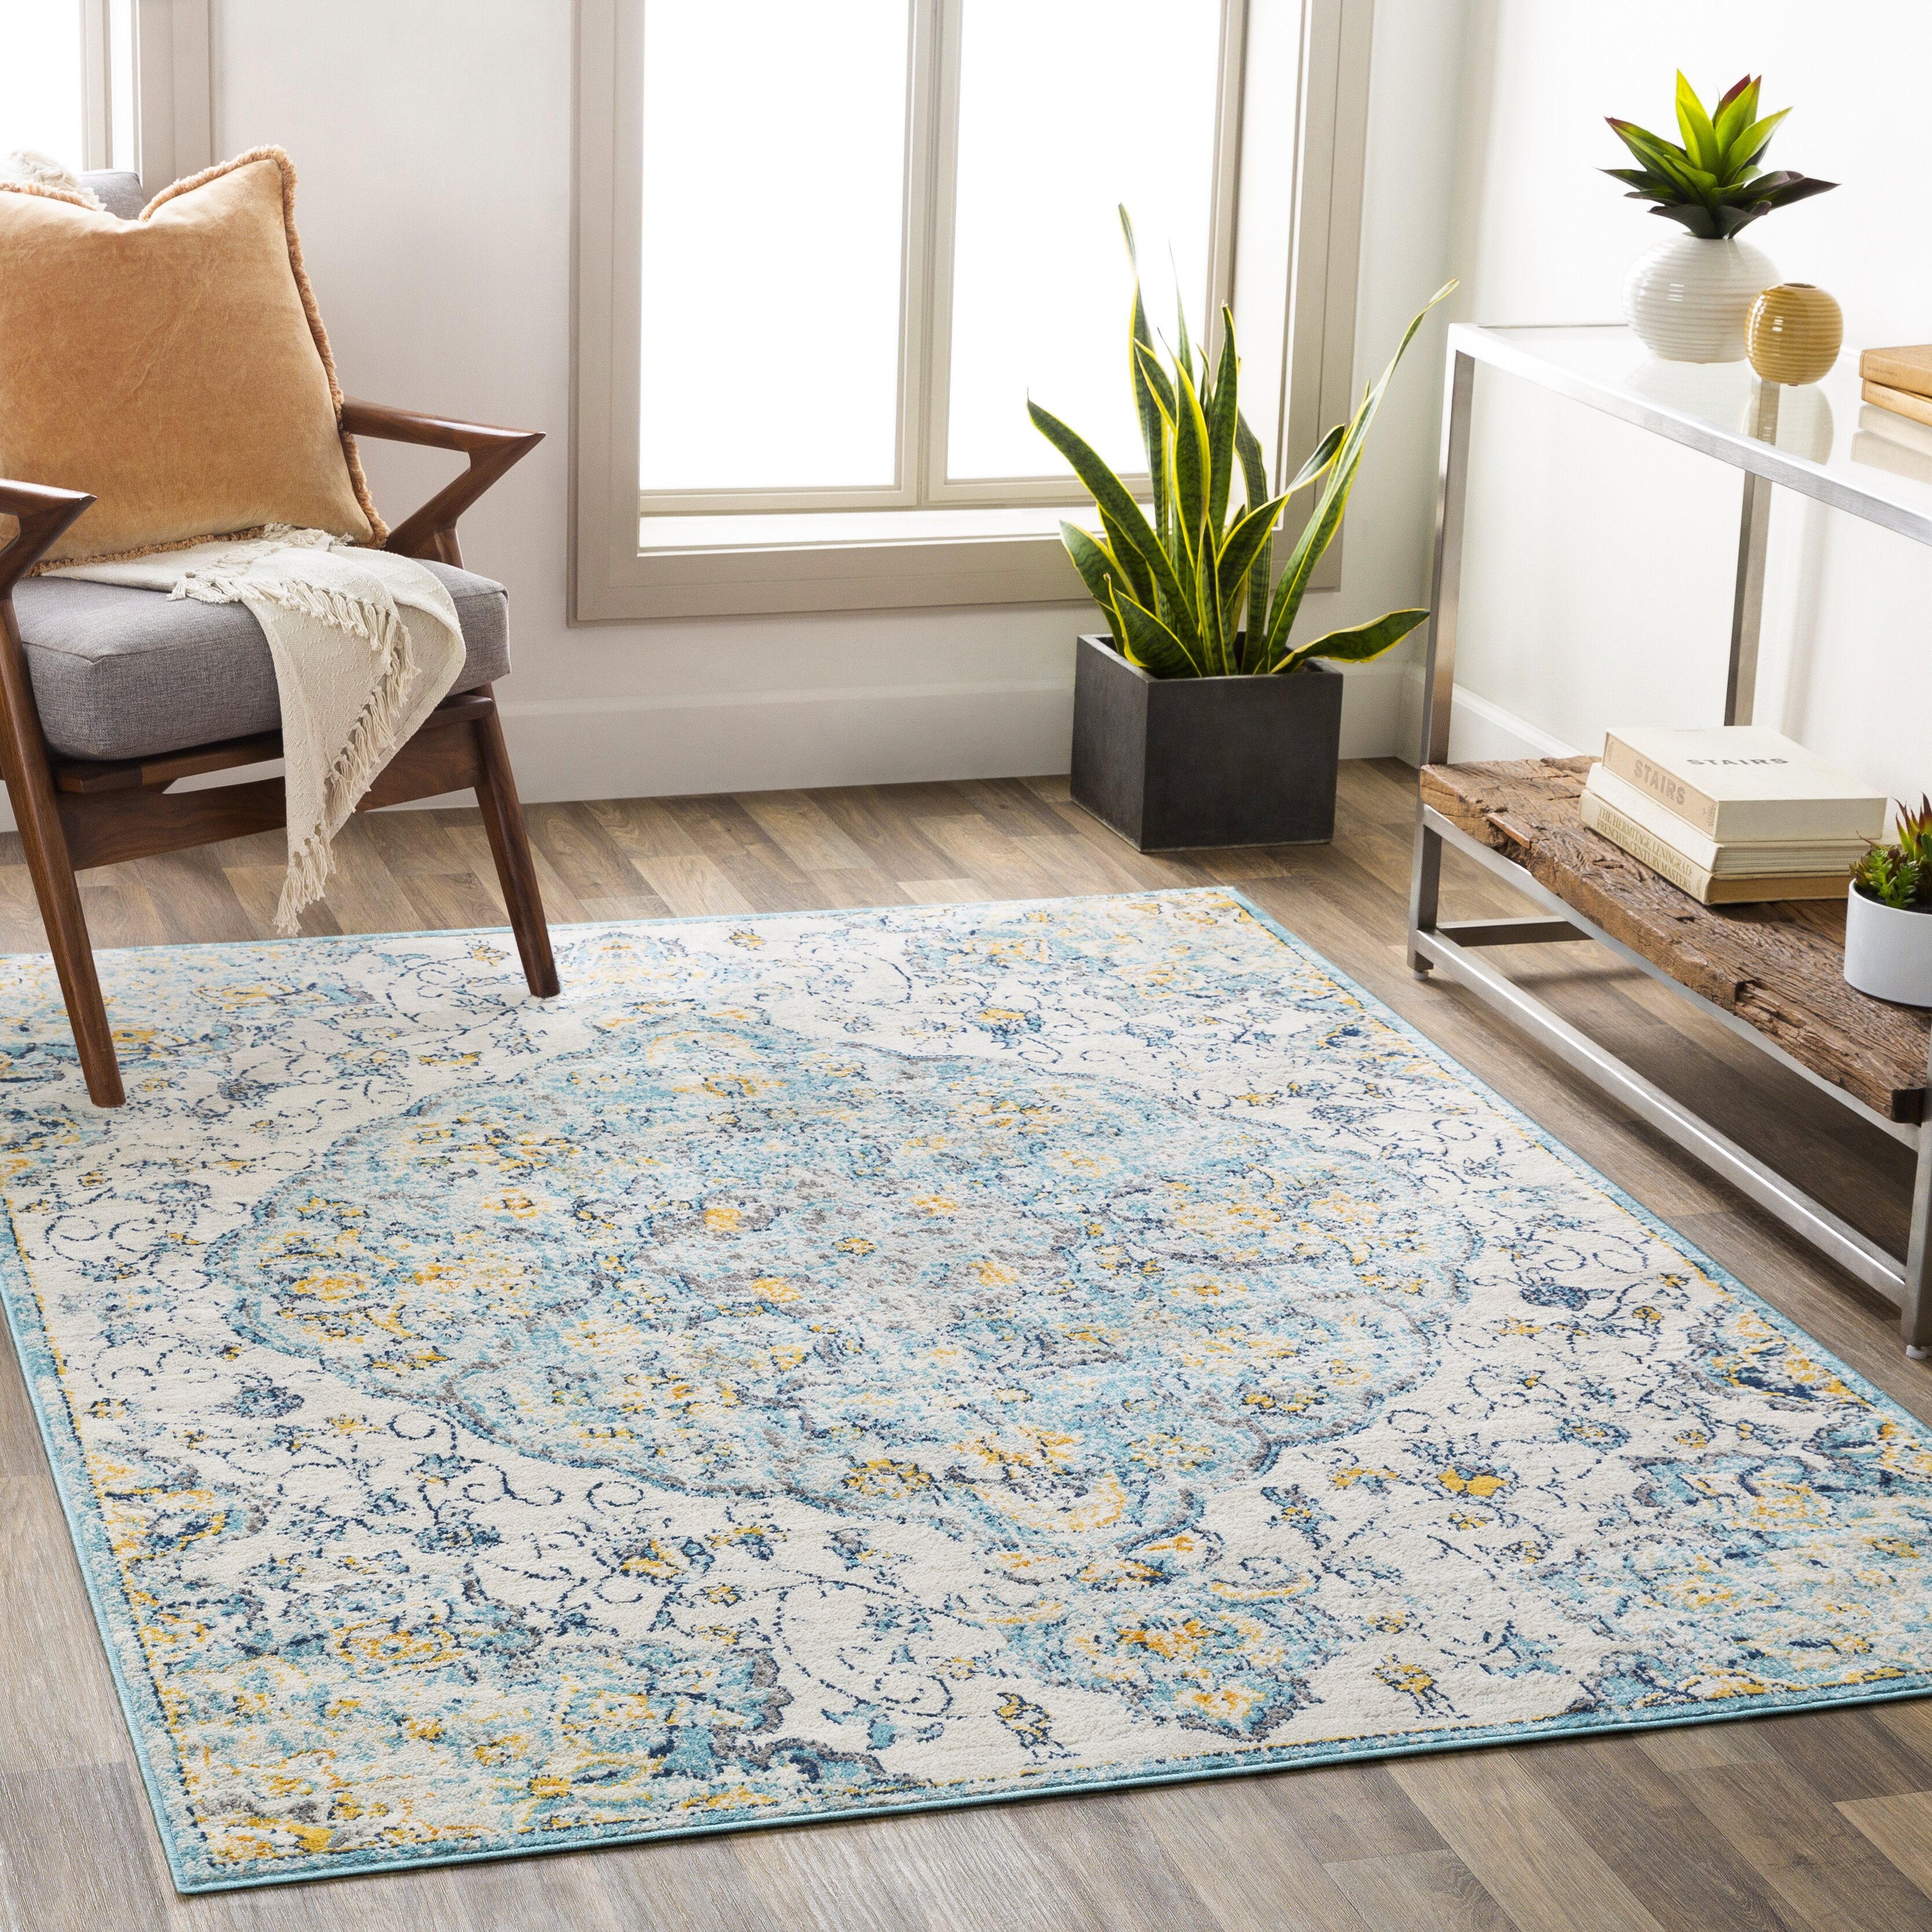 7 X 9 Yellow Gold Area Rugs You Ll Love In 2021 Wayfair